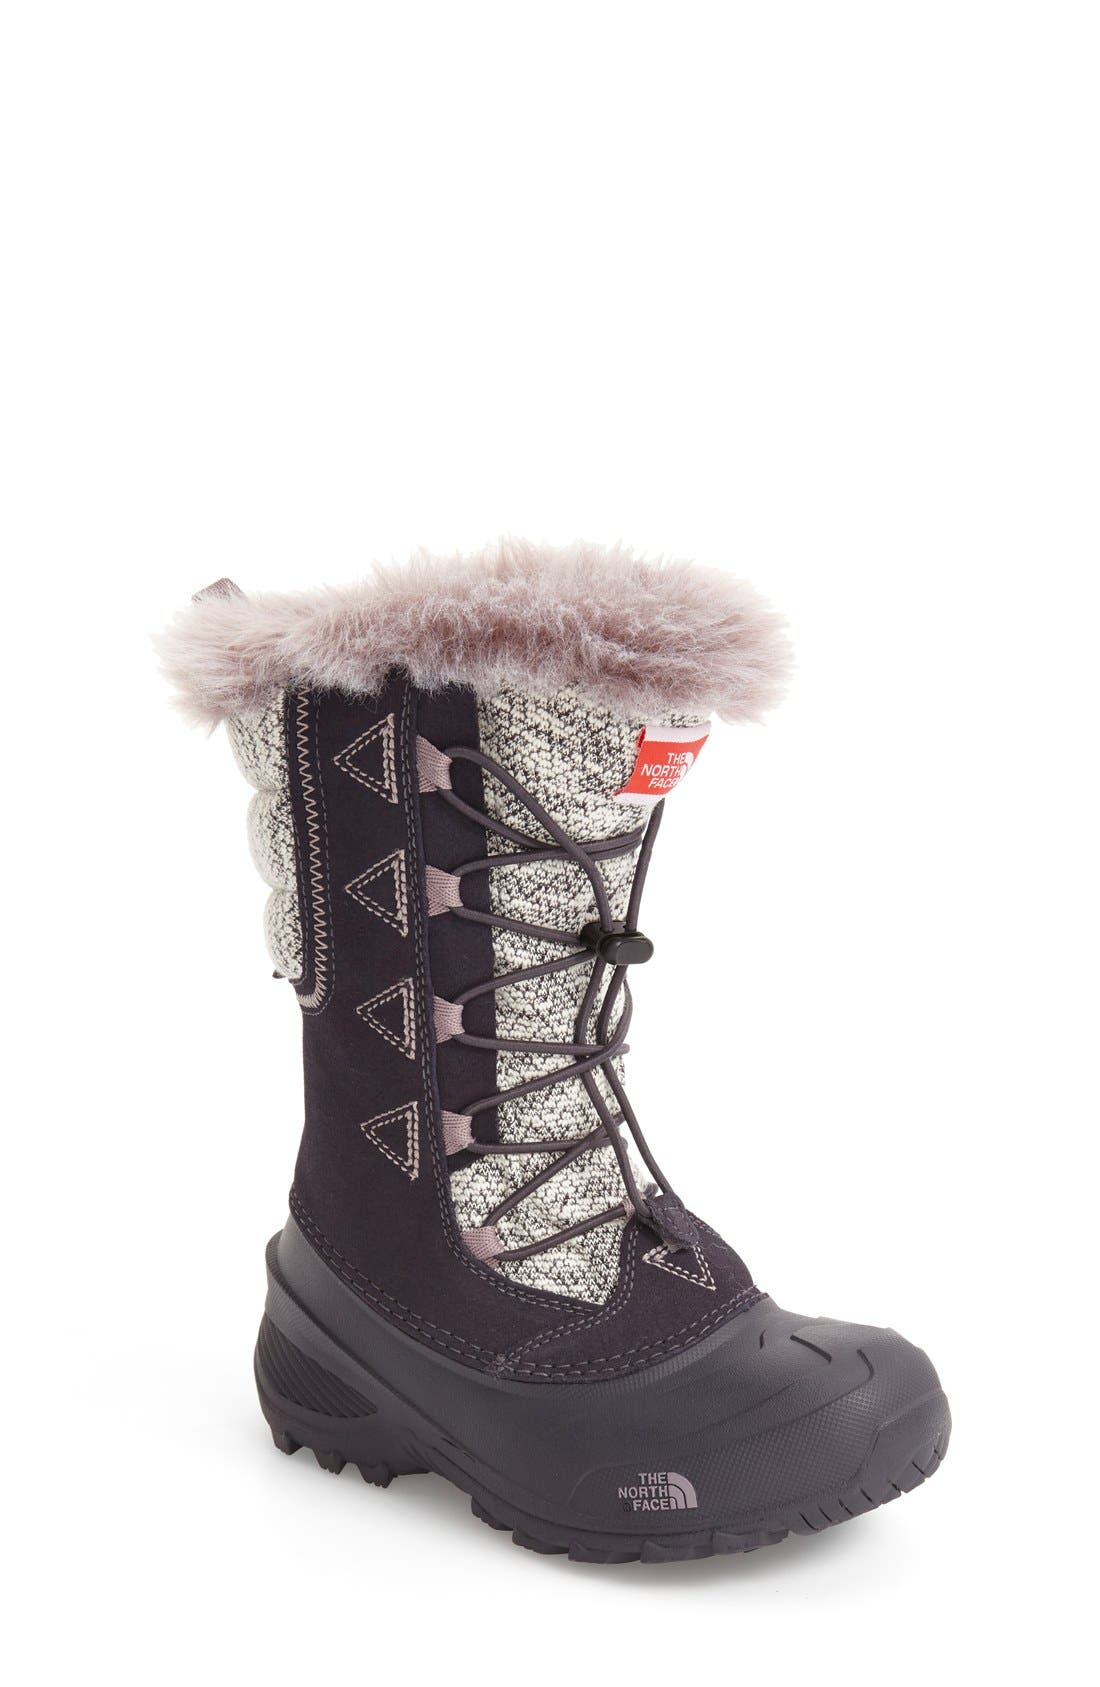 Main Image - The North Face Shellista Lace II Waterproof Boot (Toddler, Little Kid & Big Kid)